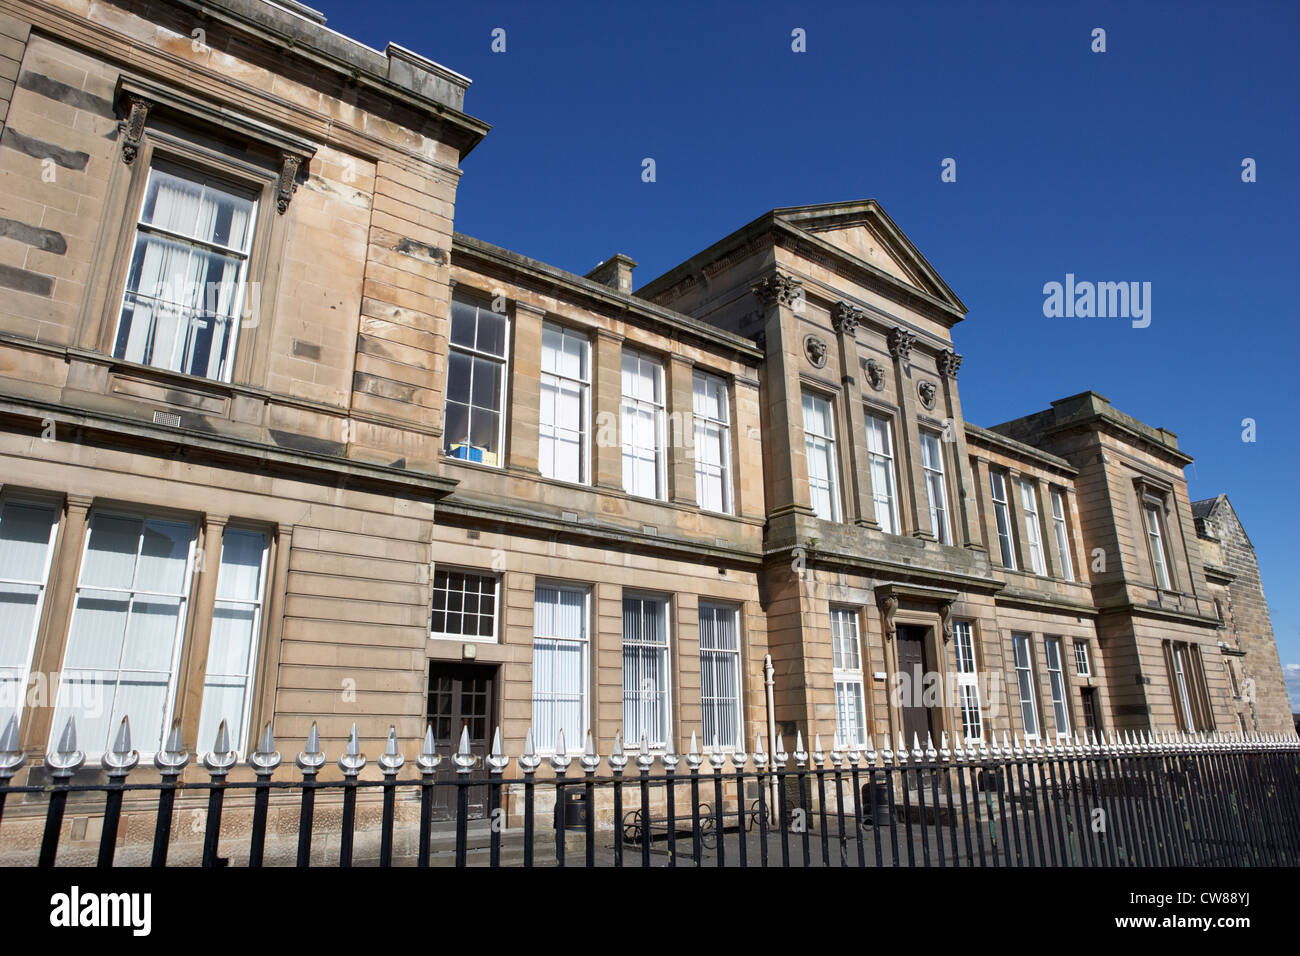 ayr academy south ayrshire the oldest secondary school in scotland uk united kingdom - Stock Image